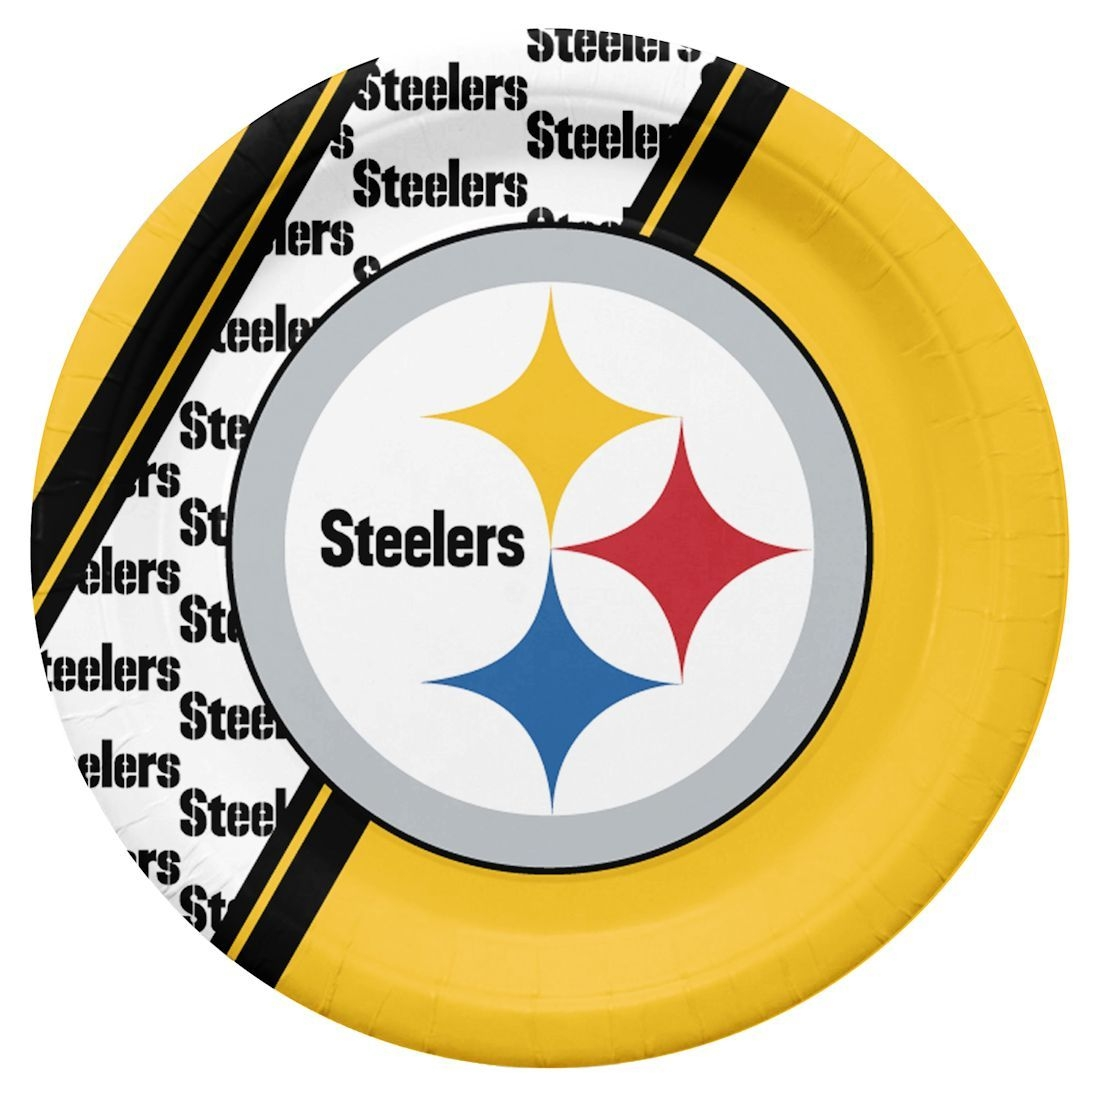 Pittsburgh Steelers Disposable Paper Plates - 9413106090 - Nfl Football Pittsburgh Steelers License Plates Frames 9413106090